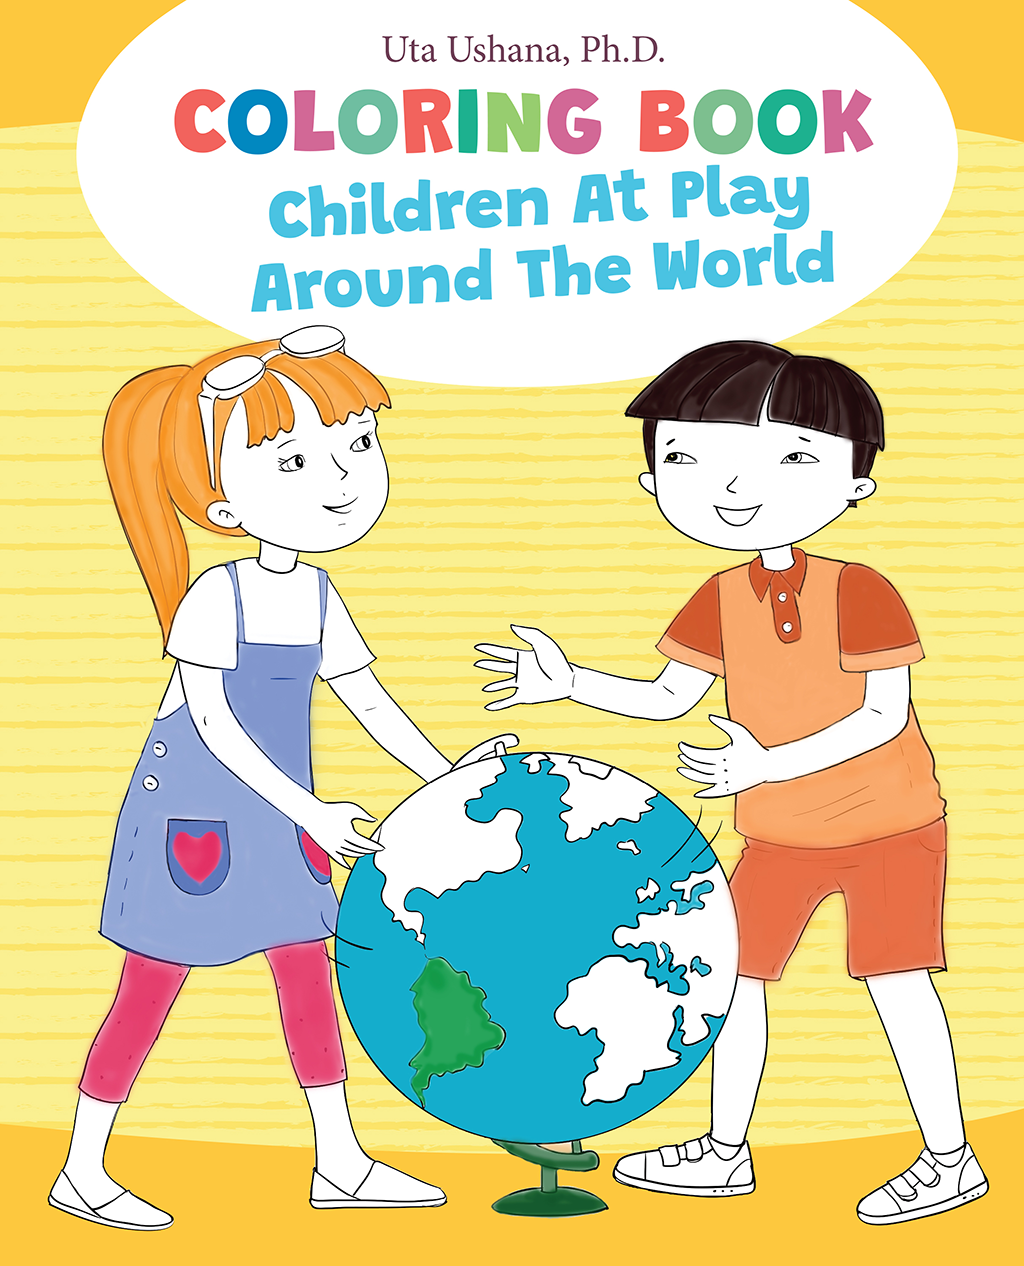 Children at Play around the World - Coloring Book, by Dr. Ushana